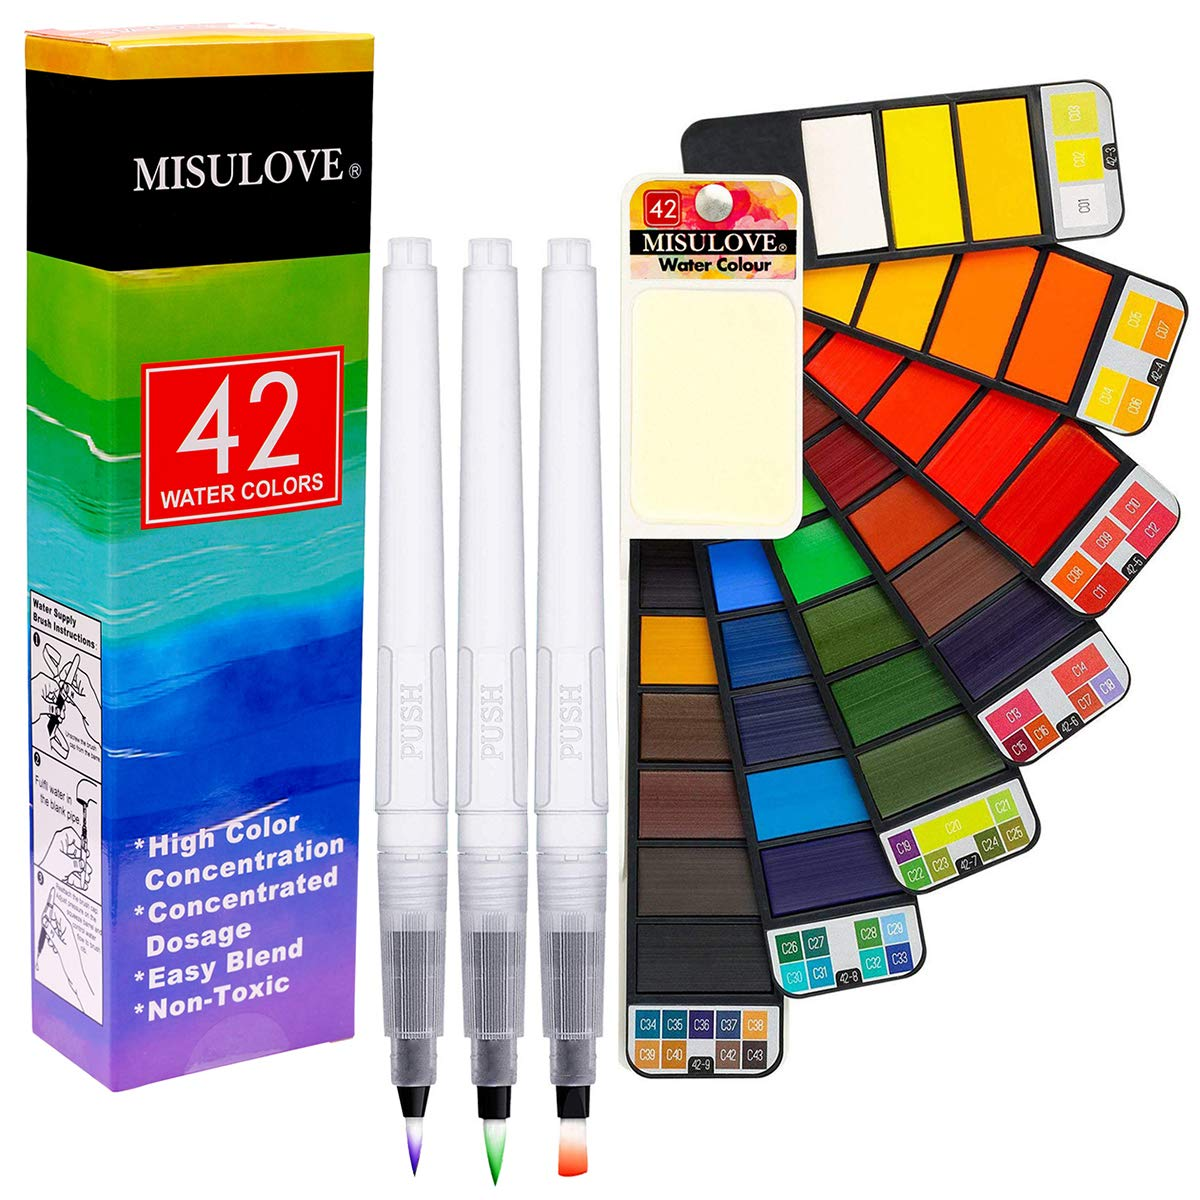 MISULOVE Superior Foldable Watercolor Paint Set - 42 Colors with 3 Watercolor Brushes Pens, Professional Travel Pocket Watercolor Kit for Field Sketch Set Outdoor Painting by MISULOVE